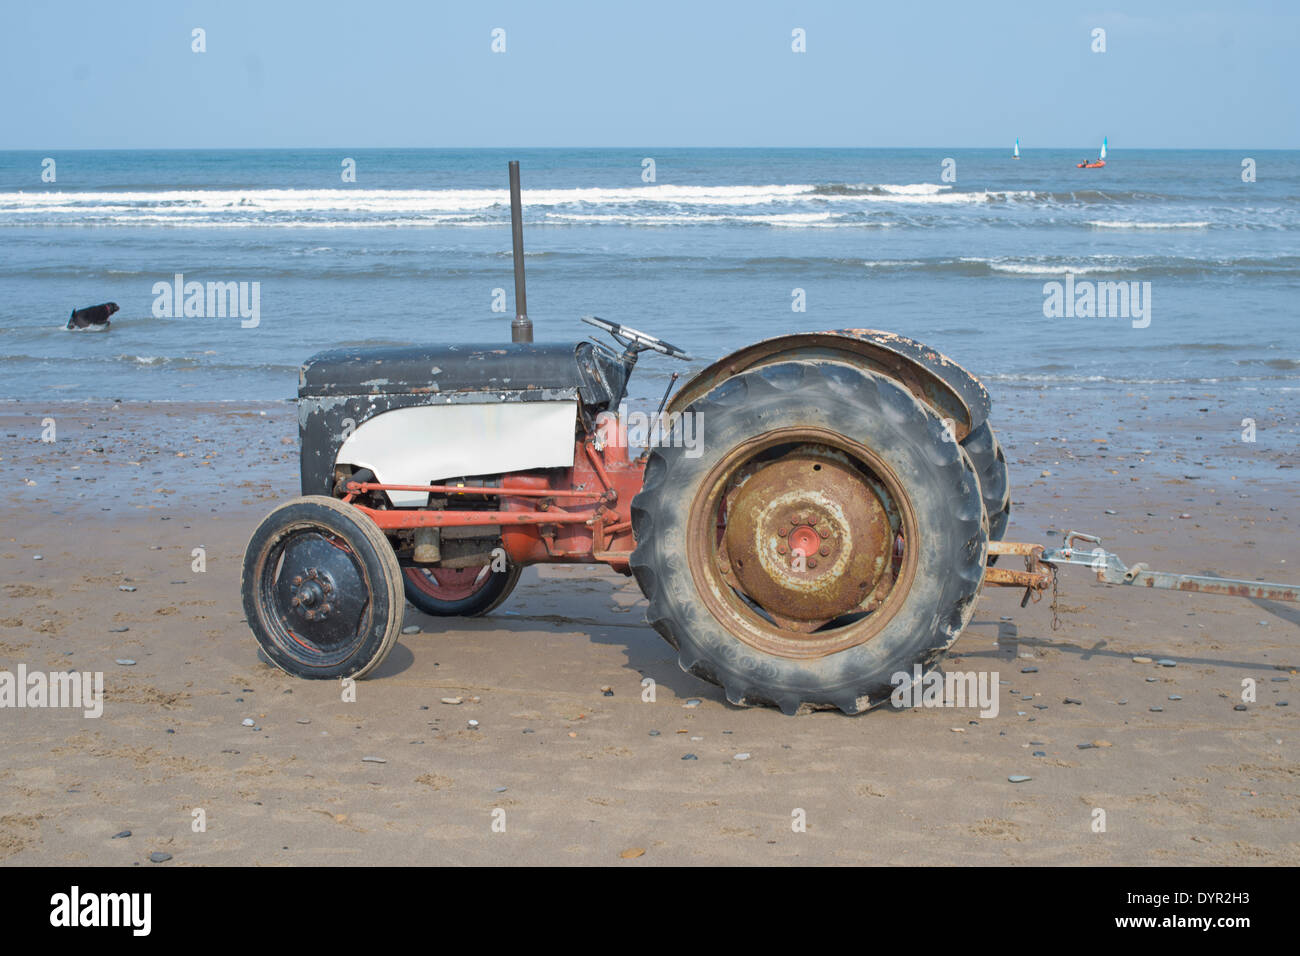 Old tractor used to tow boats Stock Photo